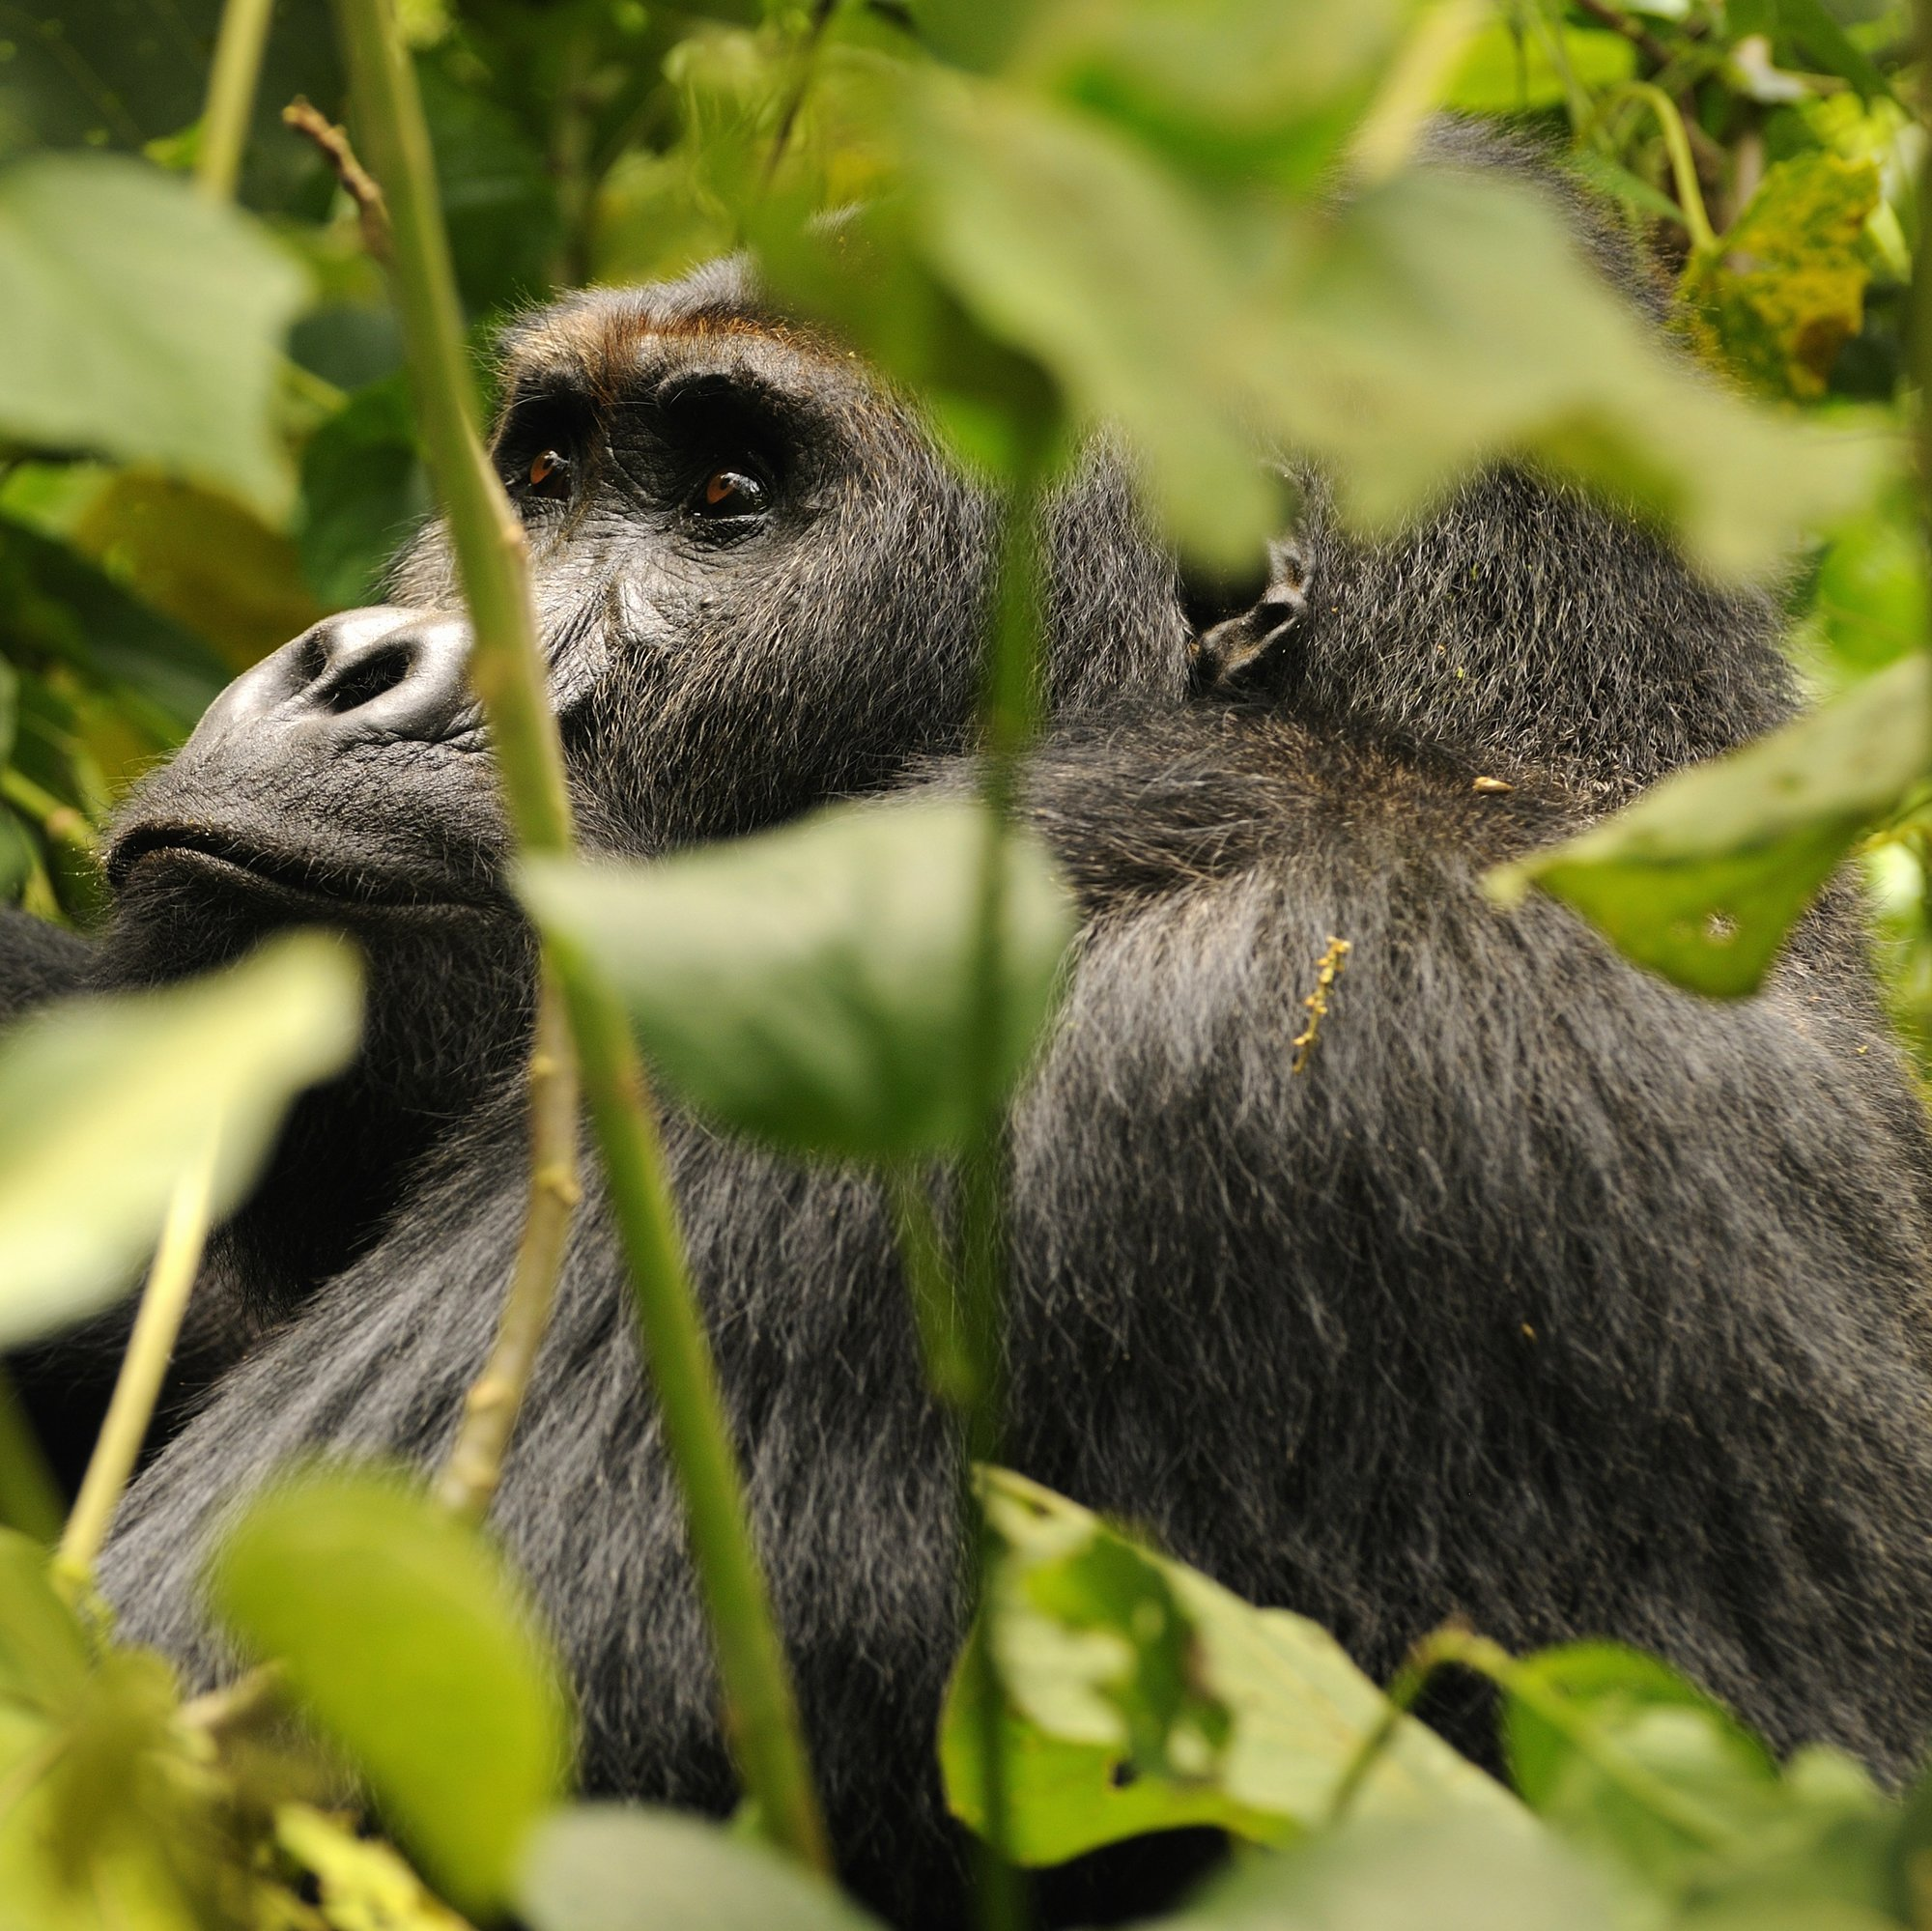 Scientists Warn of 'Eleventh Hour' for Many Primate Species